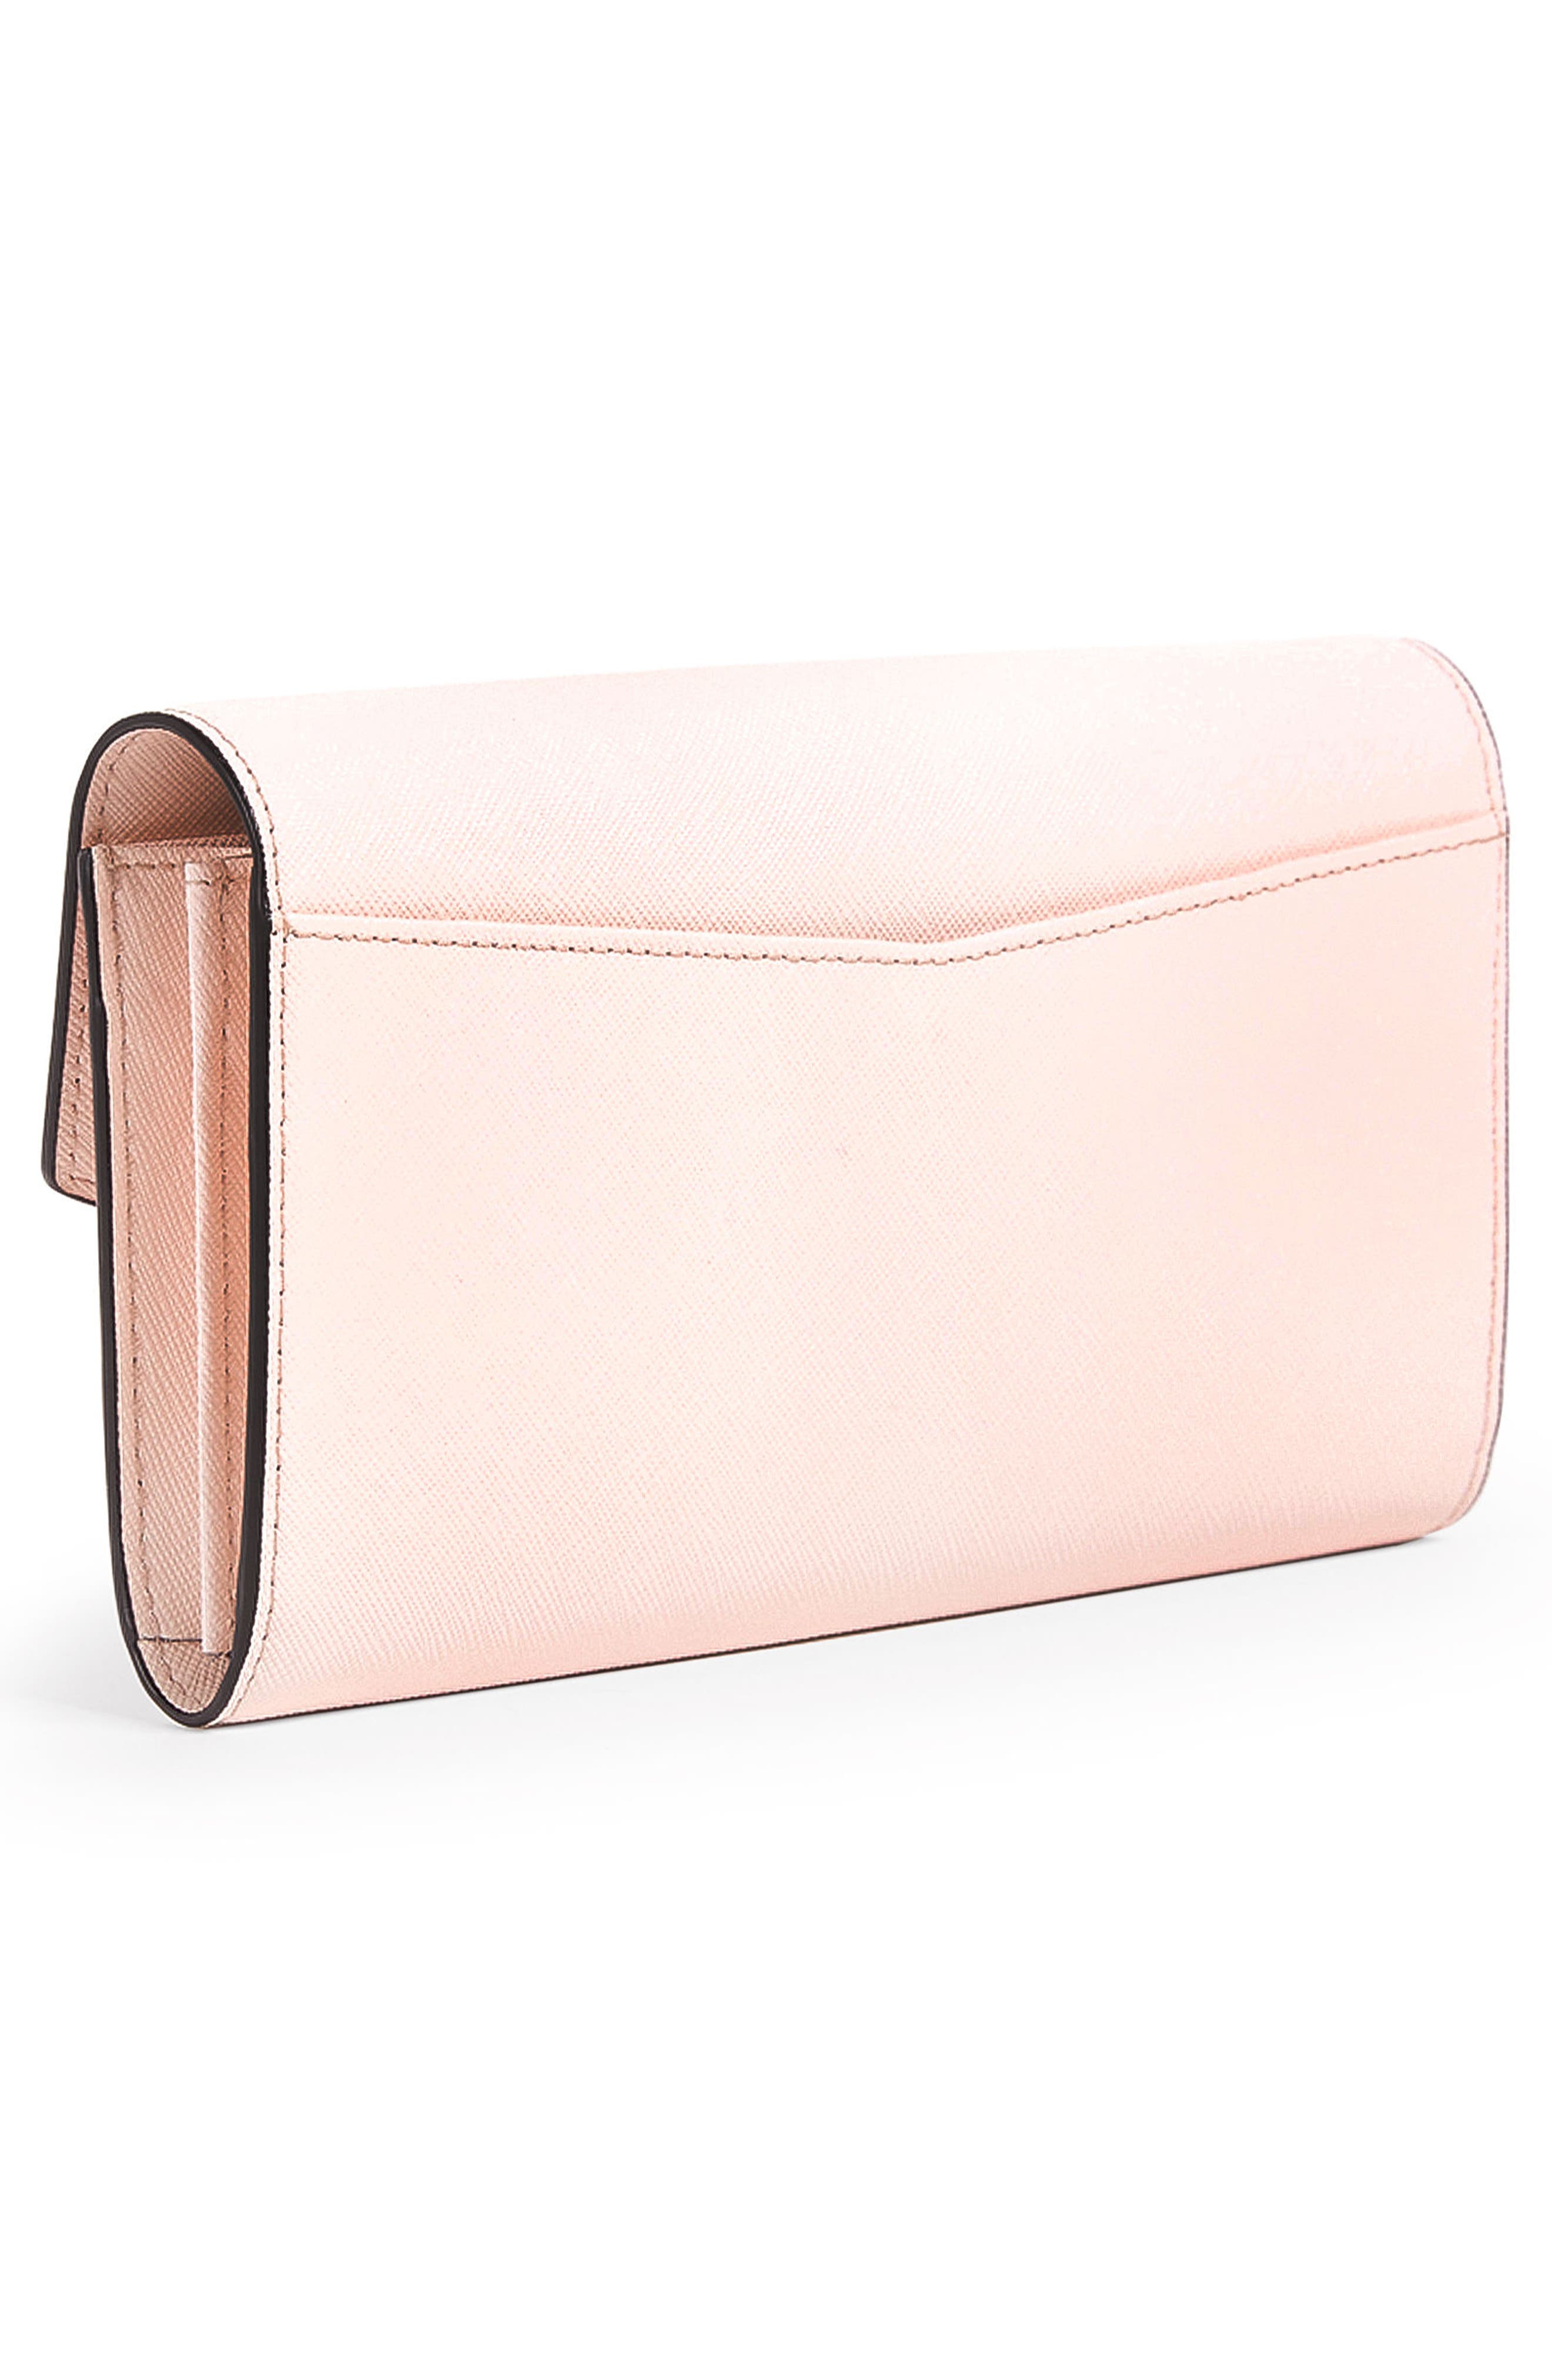 Cobble Hill Calfskin Leather Wallet,                             Alternate thumbnail 3, color,                             BLOSSOM